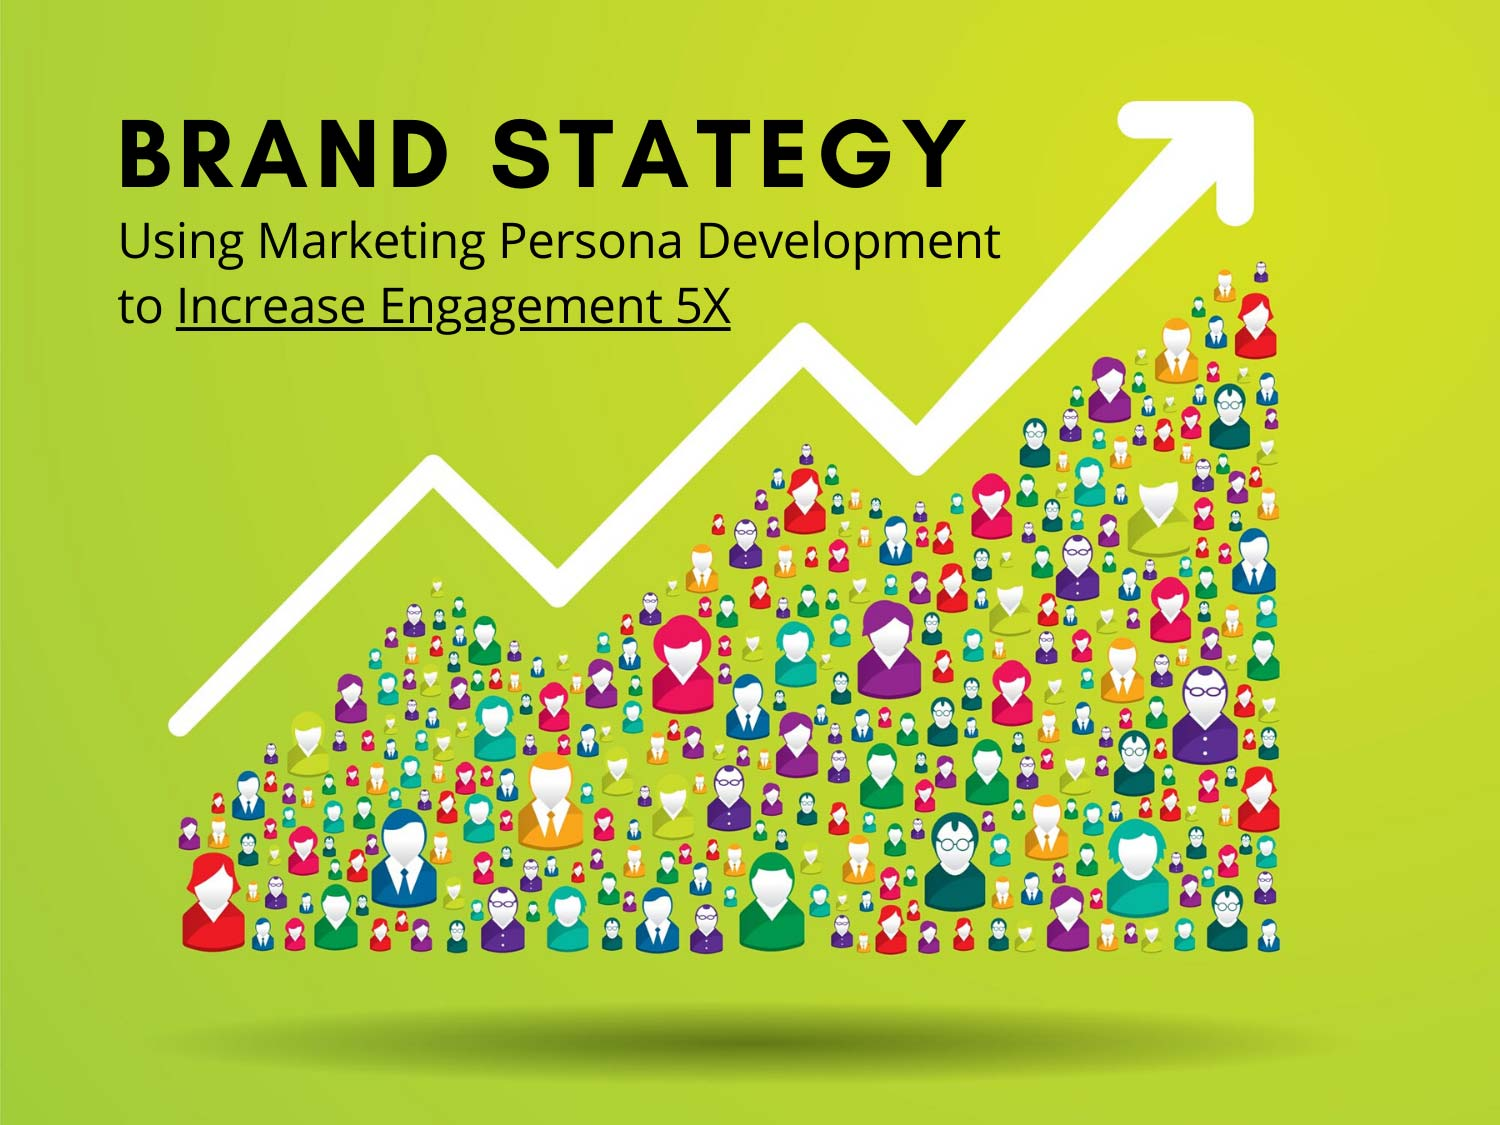 Branding Strategy: Using Marketing Persona Development to Increase Engagement 5X